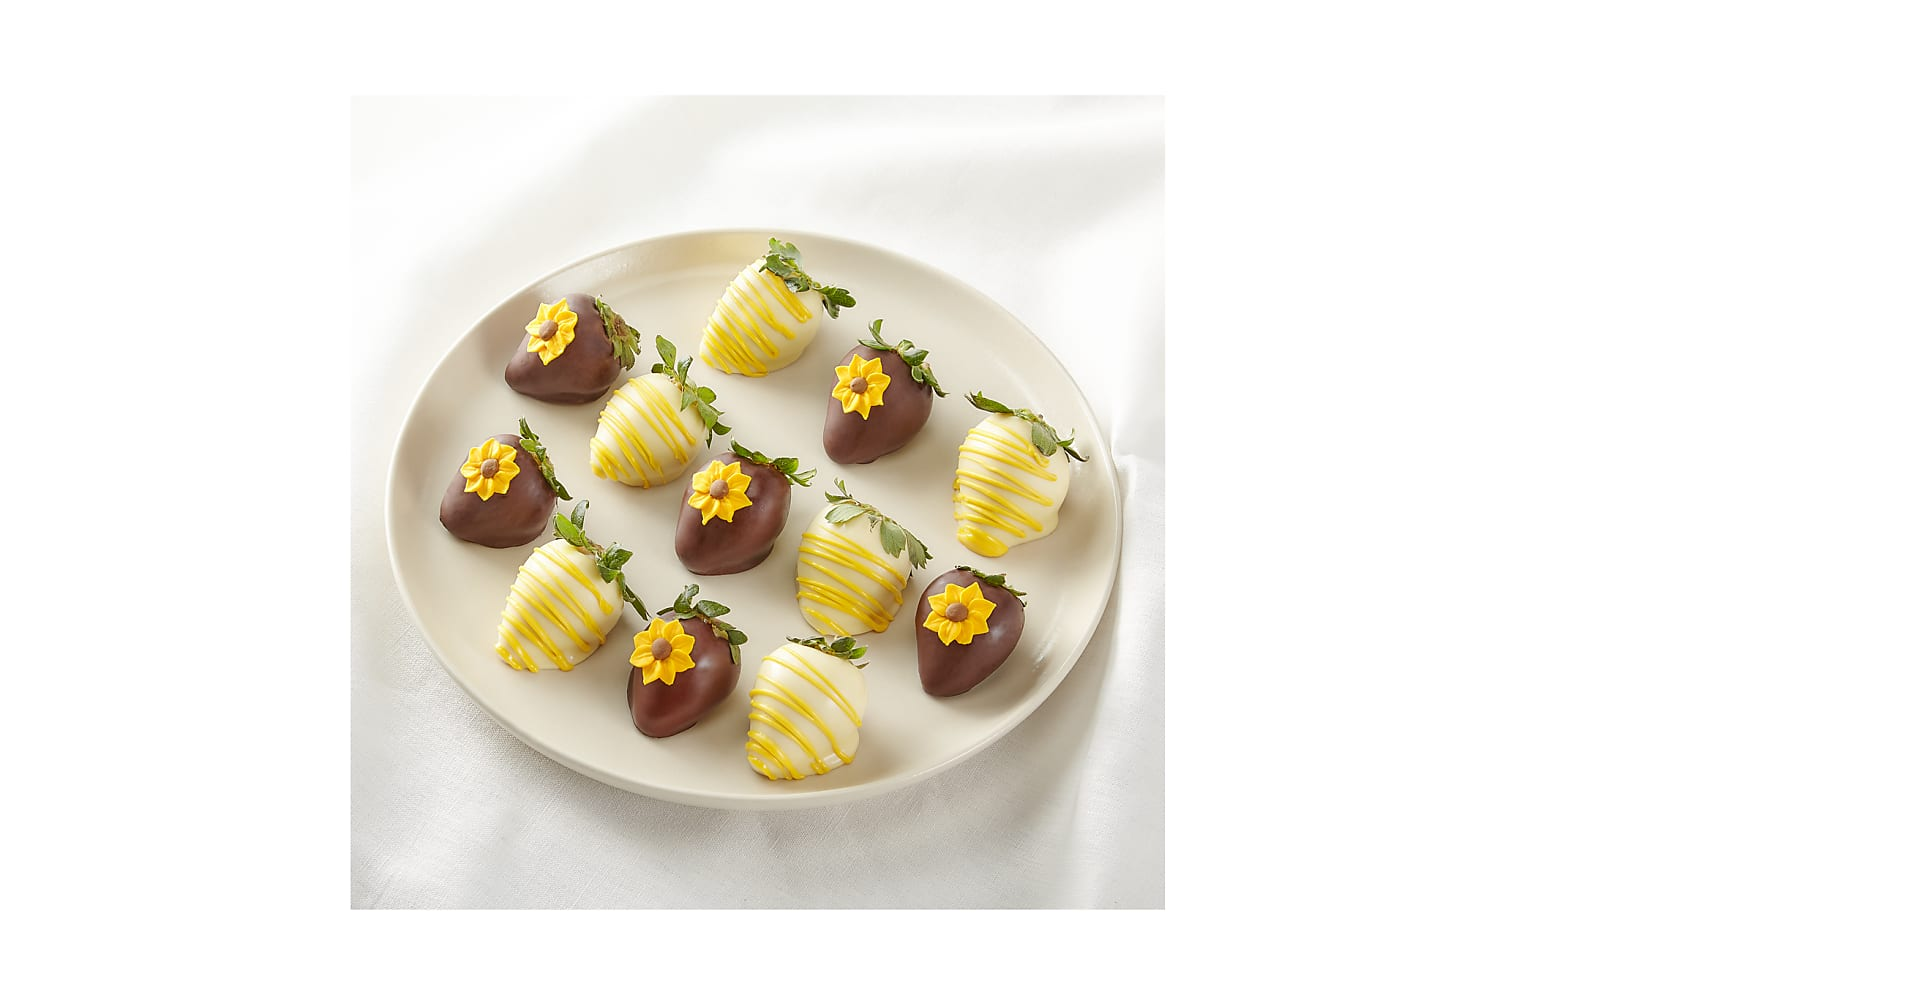 Full Dozen Sunny Days Belgian Dark Chocolate-Covered Strawberries - Image 2 Of 2